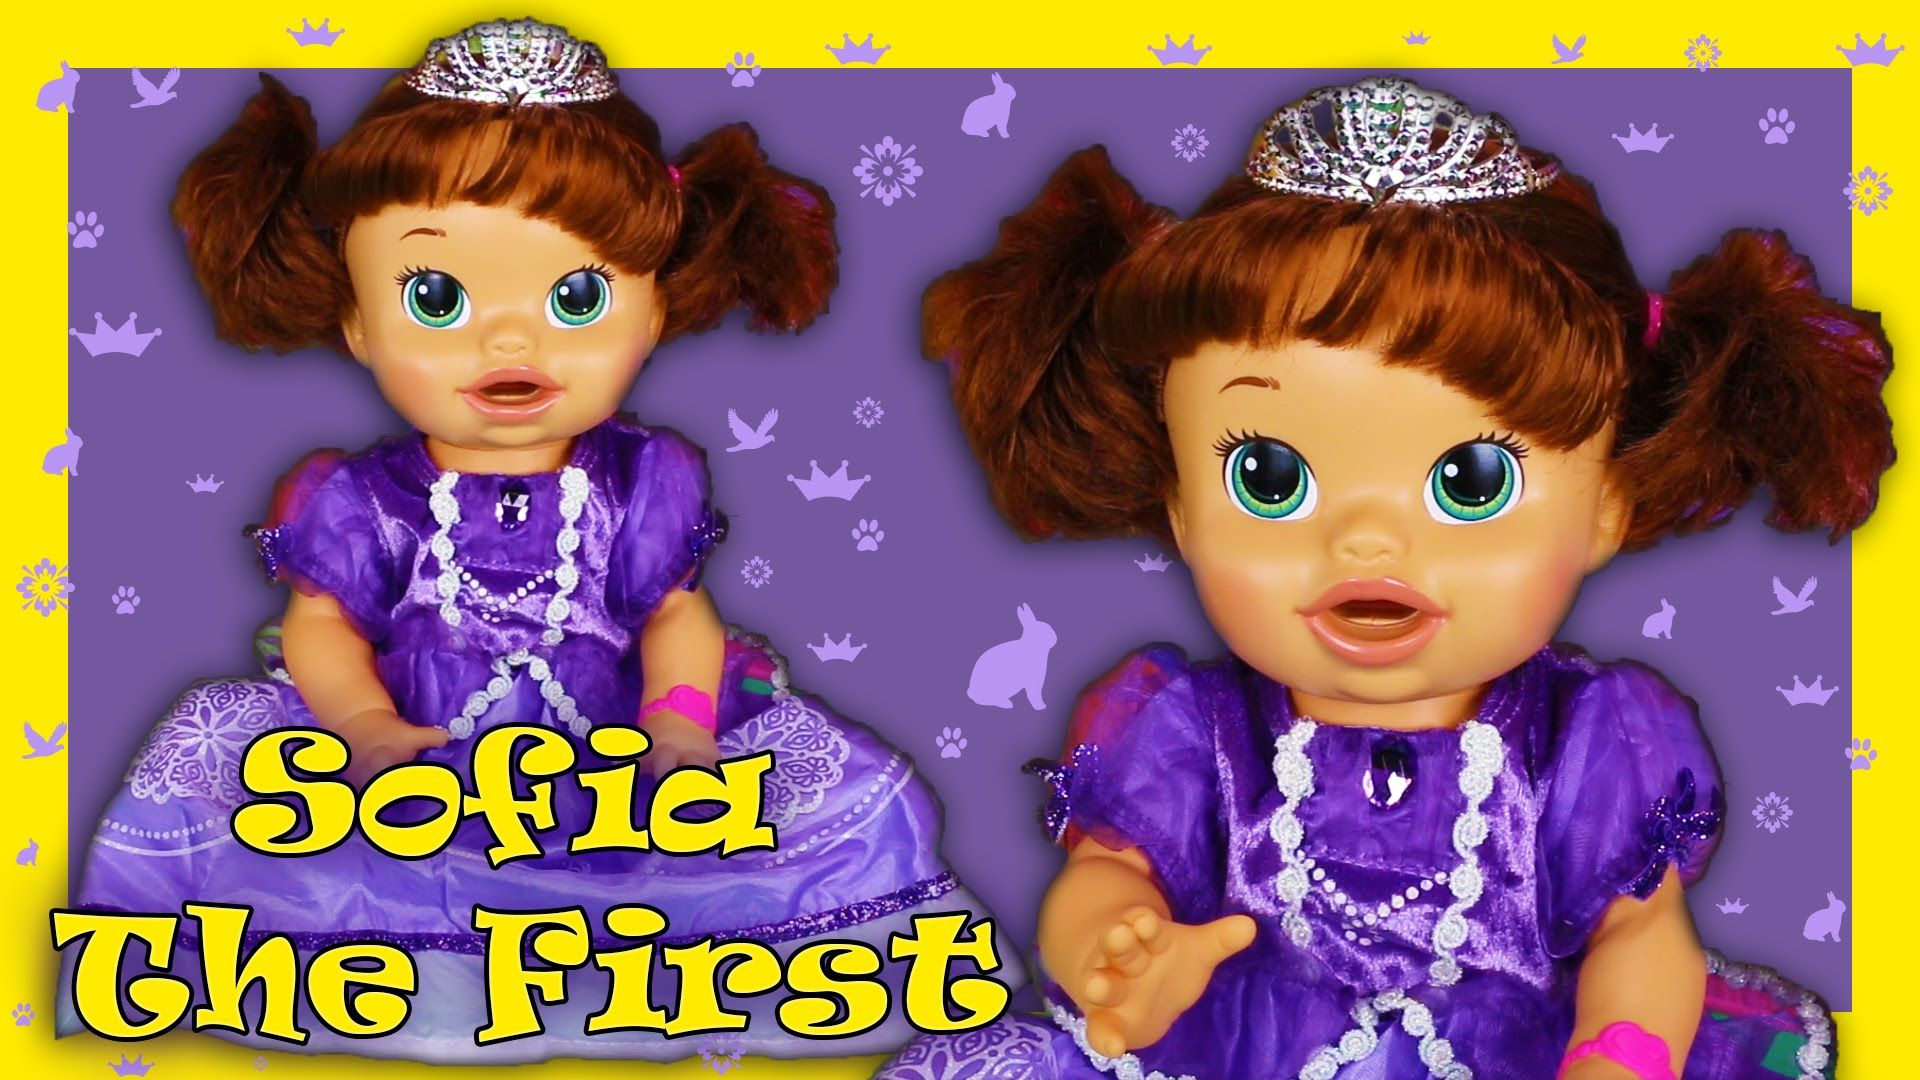 Sofia The First Custom Baby Alive Doll Eats Play Doh Poops Blind Bags Surprise Toys Baby Alive Baby Alive Dolls Custom Baby